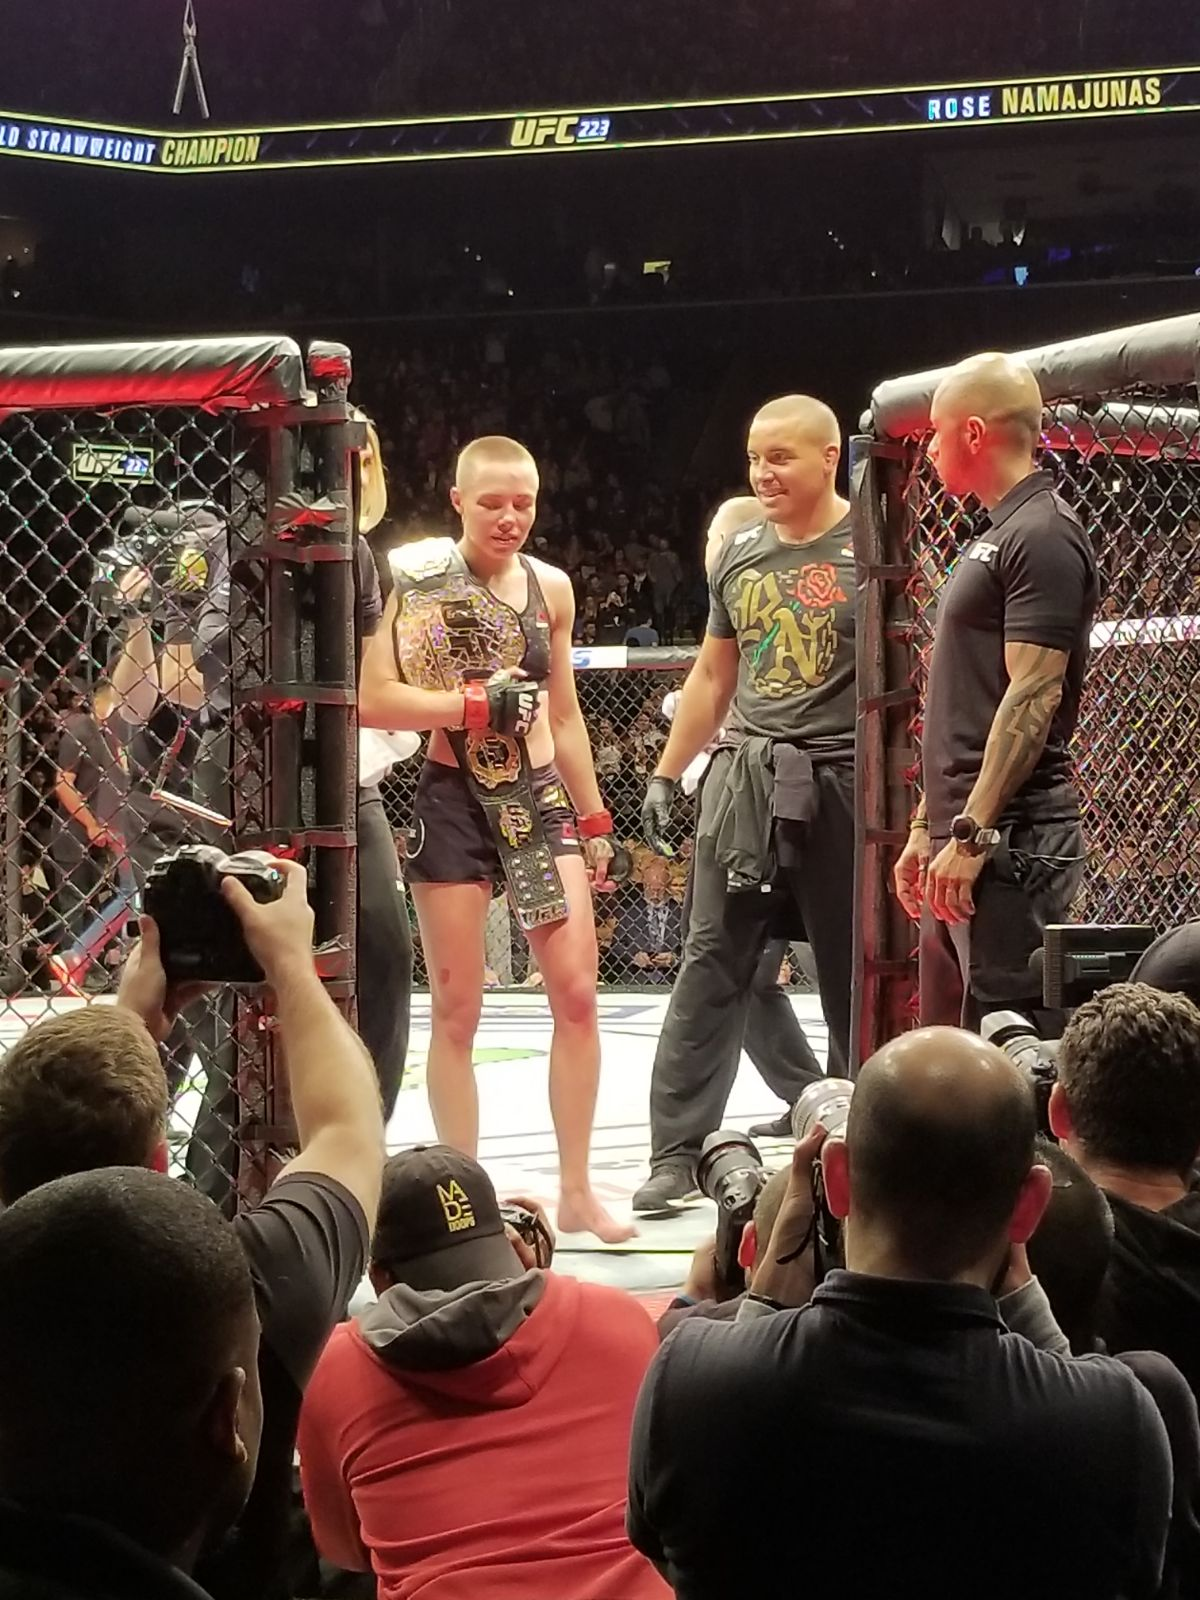 UFC 223 Results: Rose Namajunas Retains Her Title Belt in a Unanimous Victory -